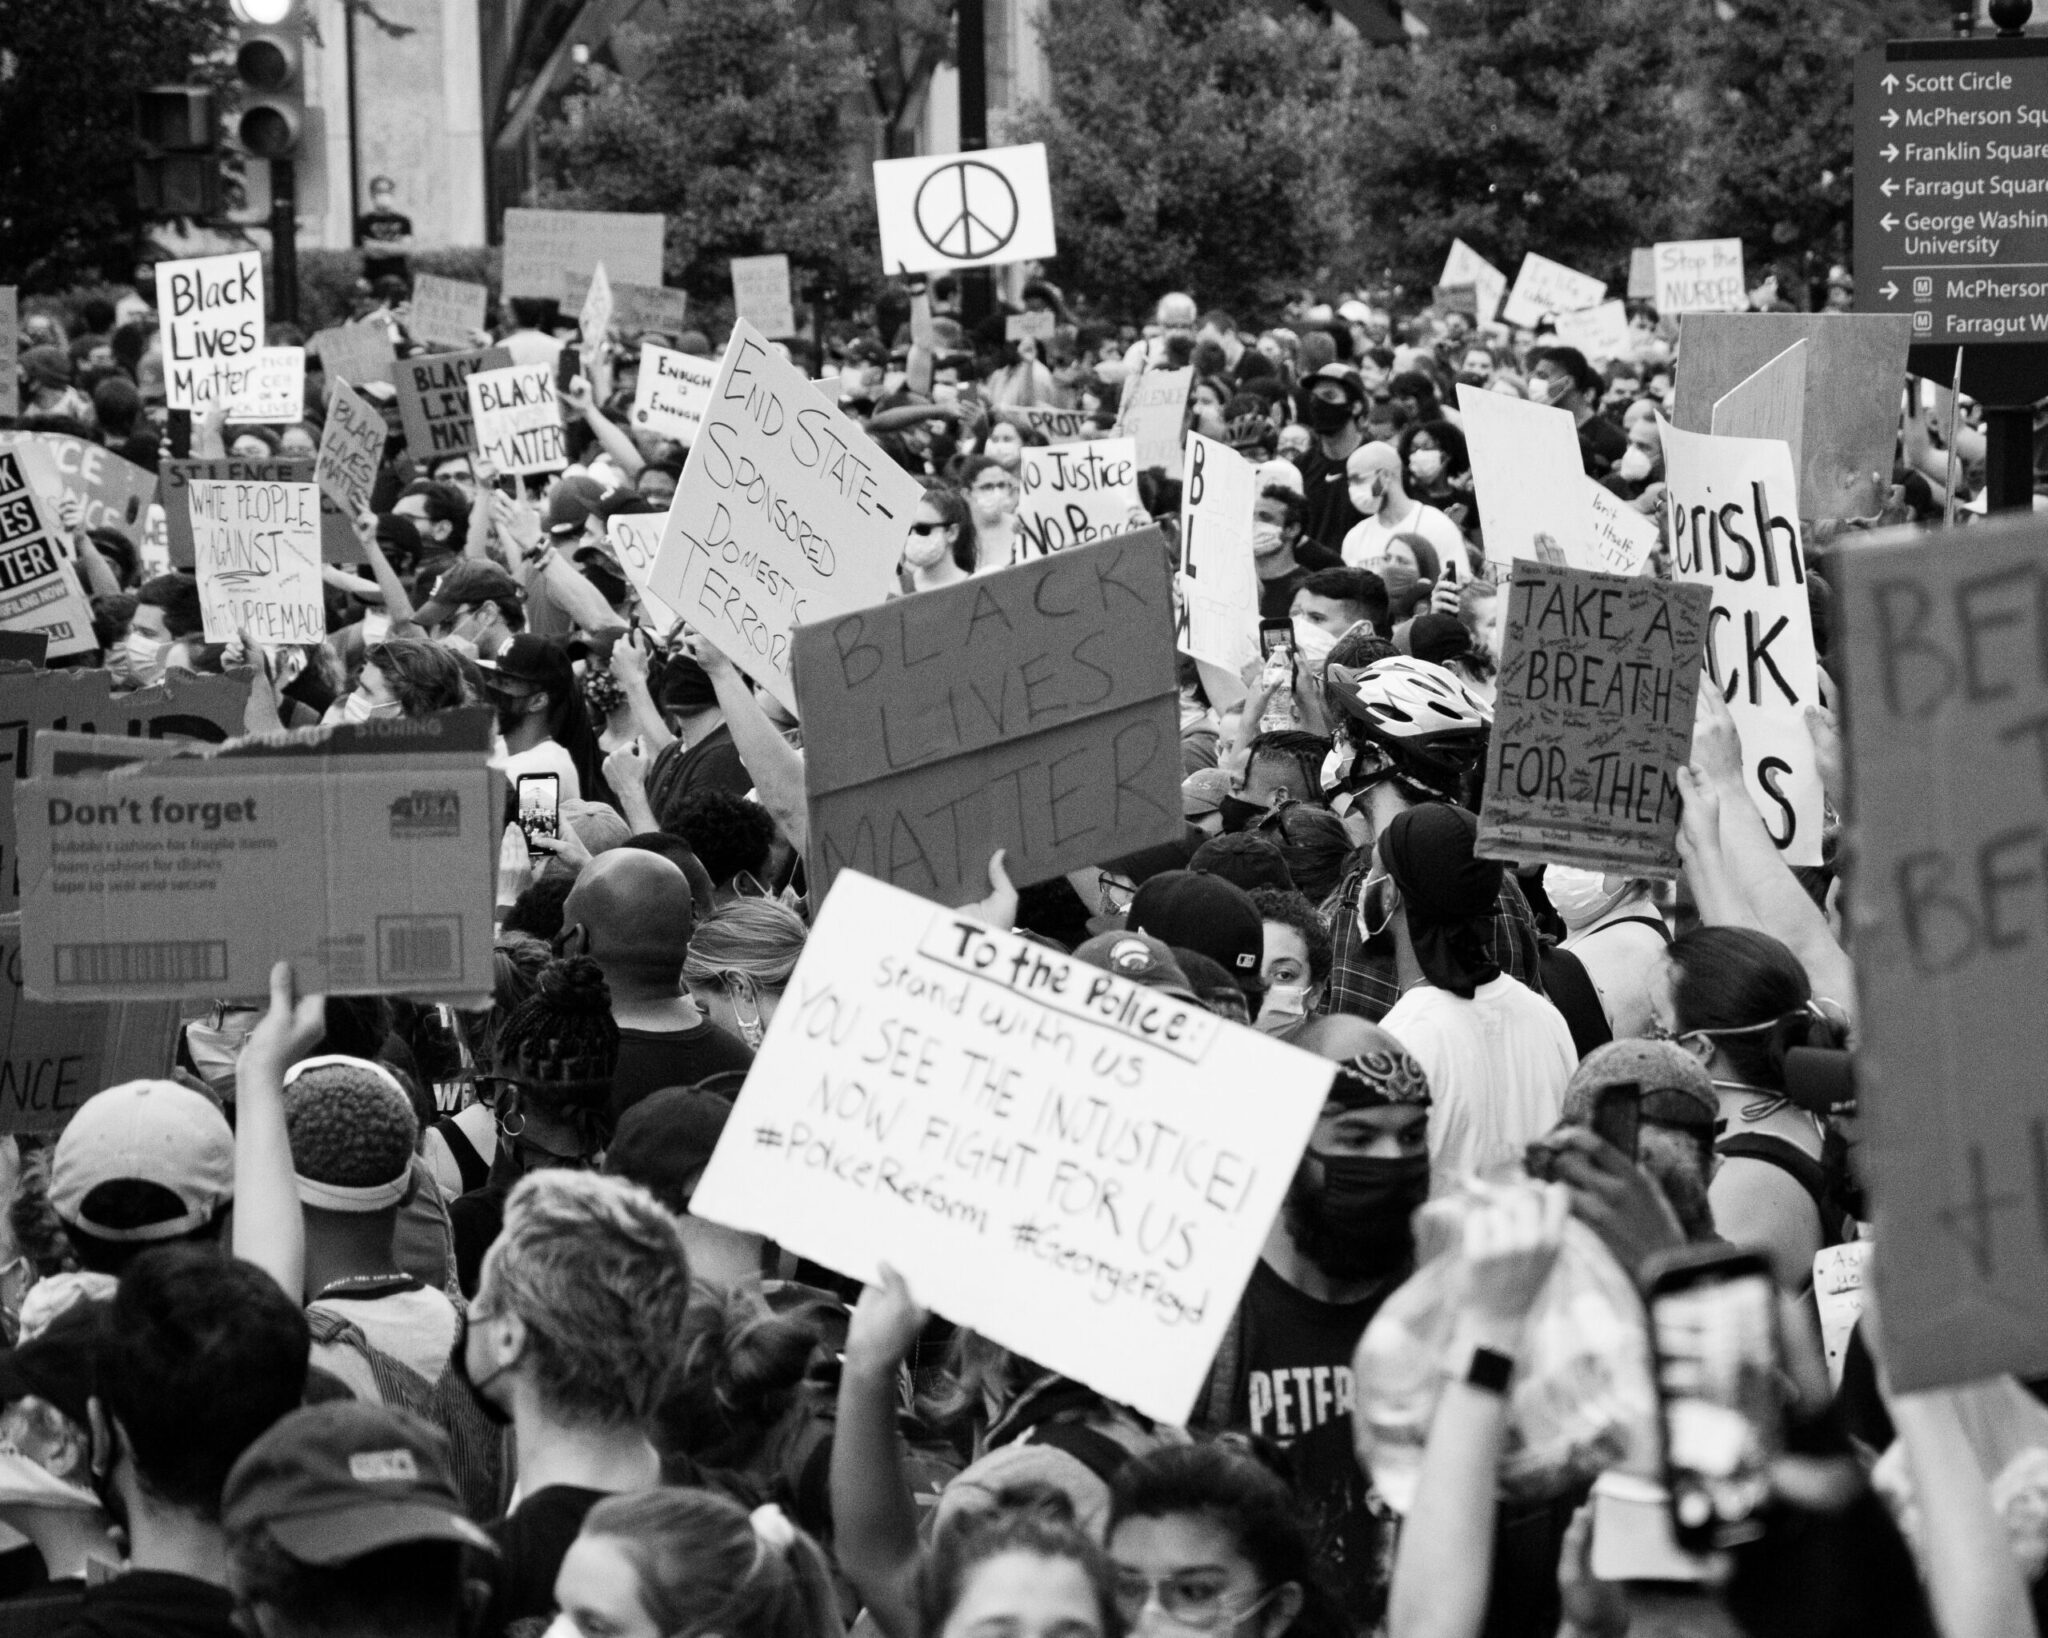 A crowd of people holding signs at a black lives matter protest